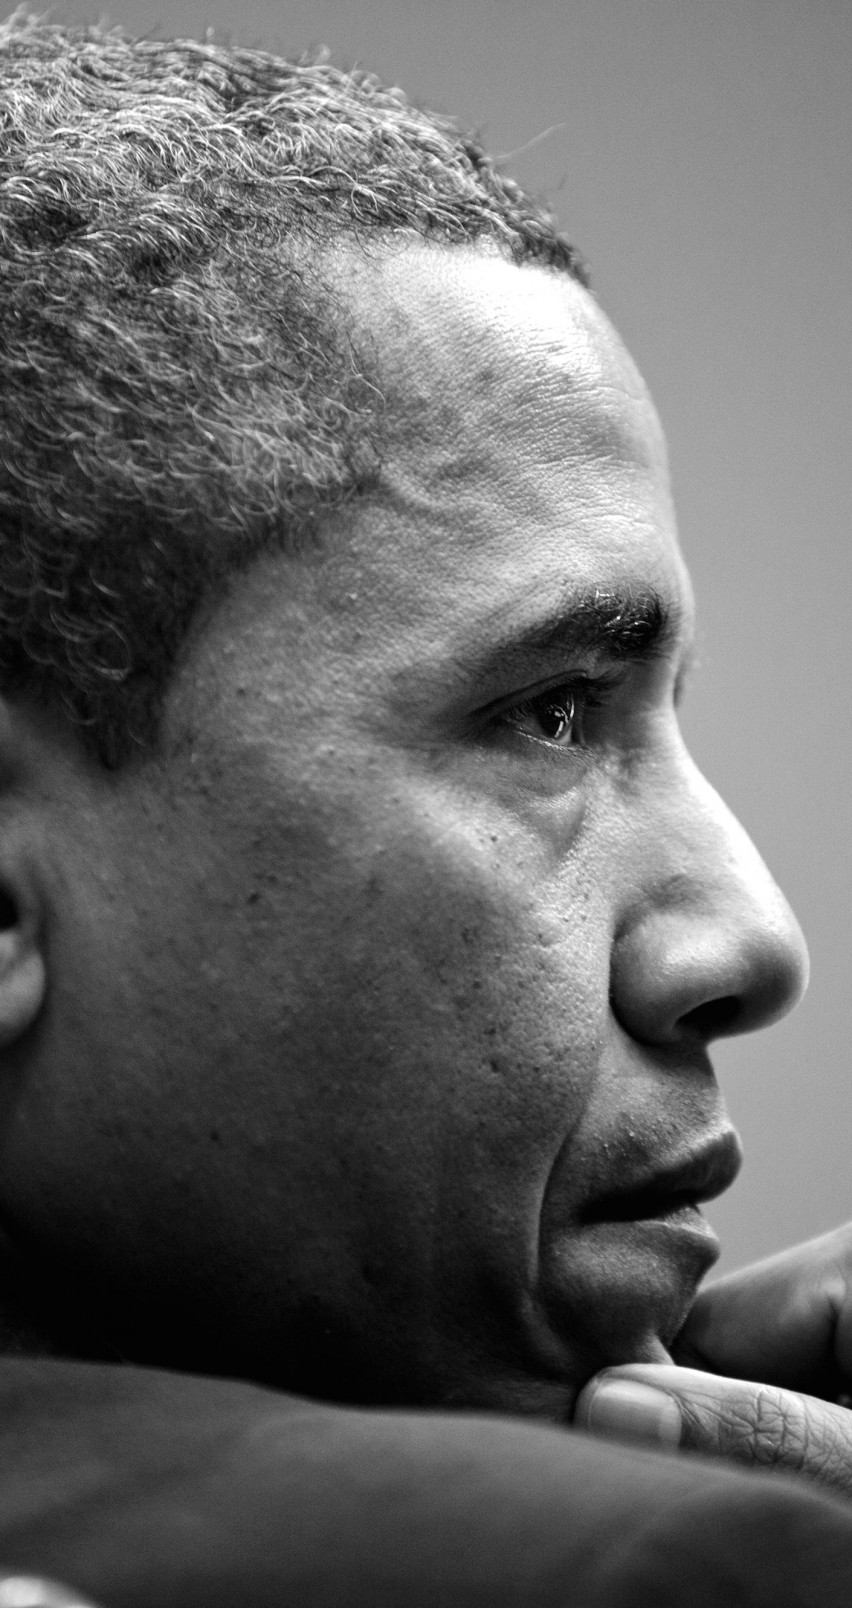 Barack Obama in Black & White Wallpaper for Apple iPhone 6 / 6s